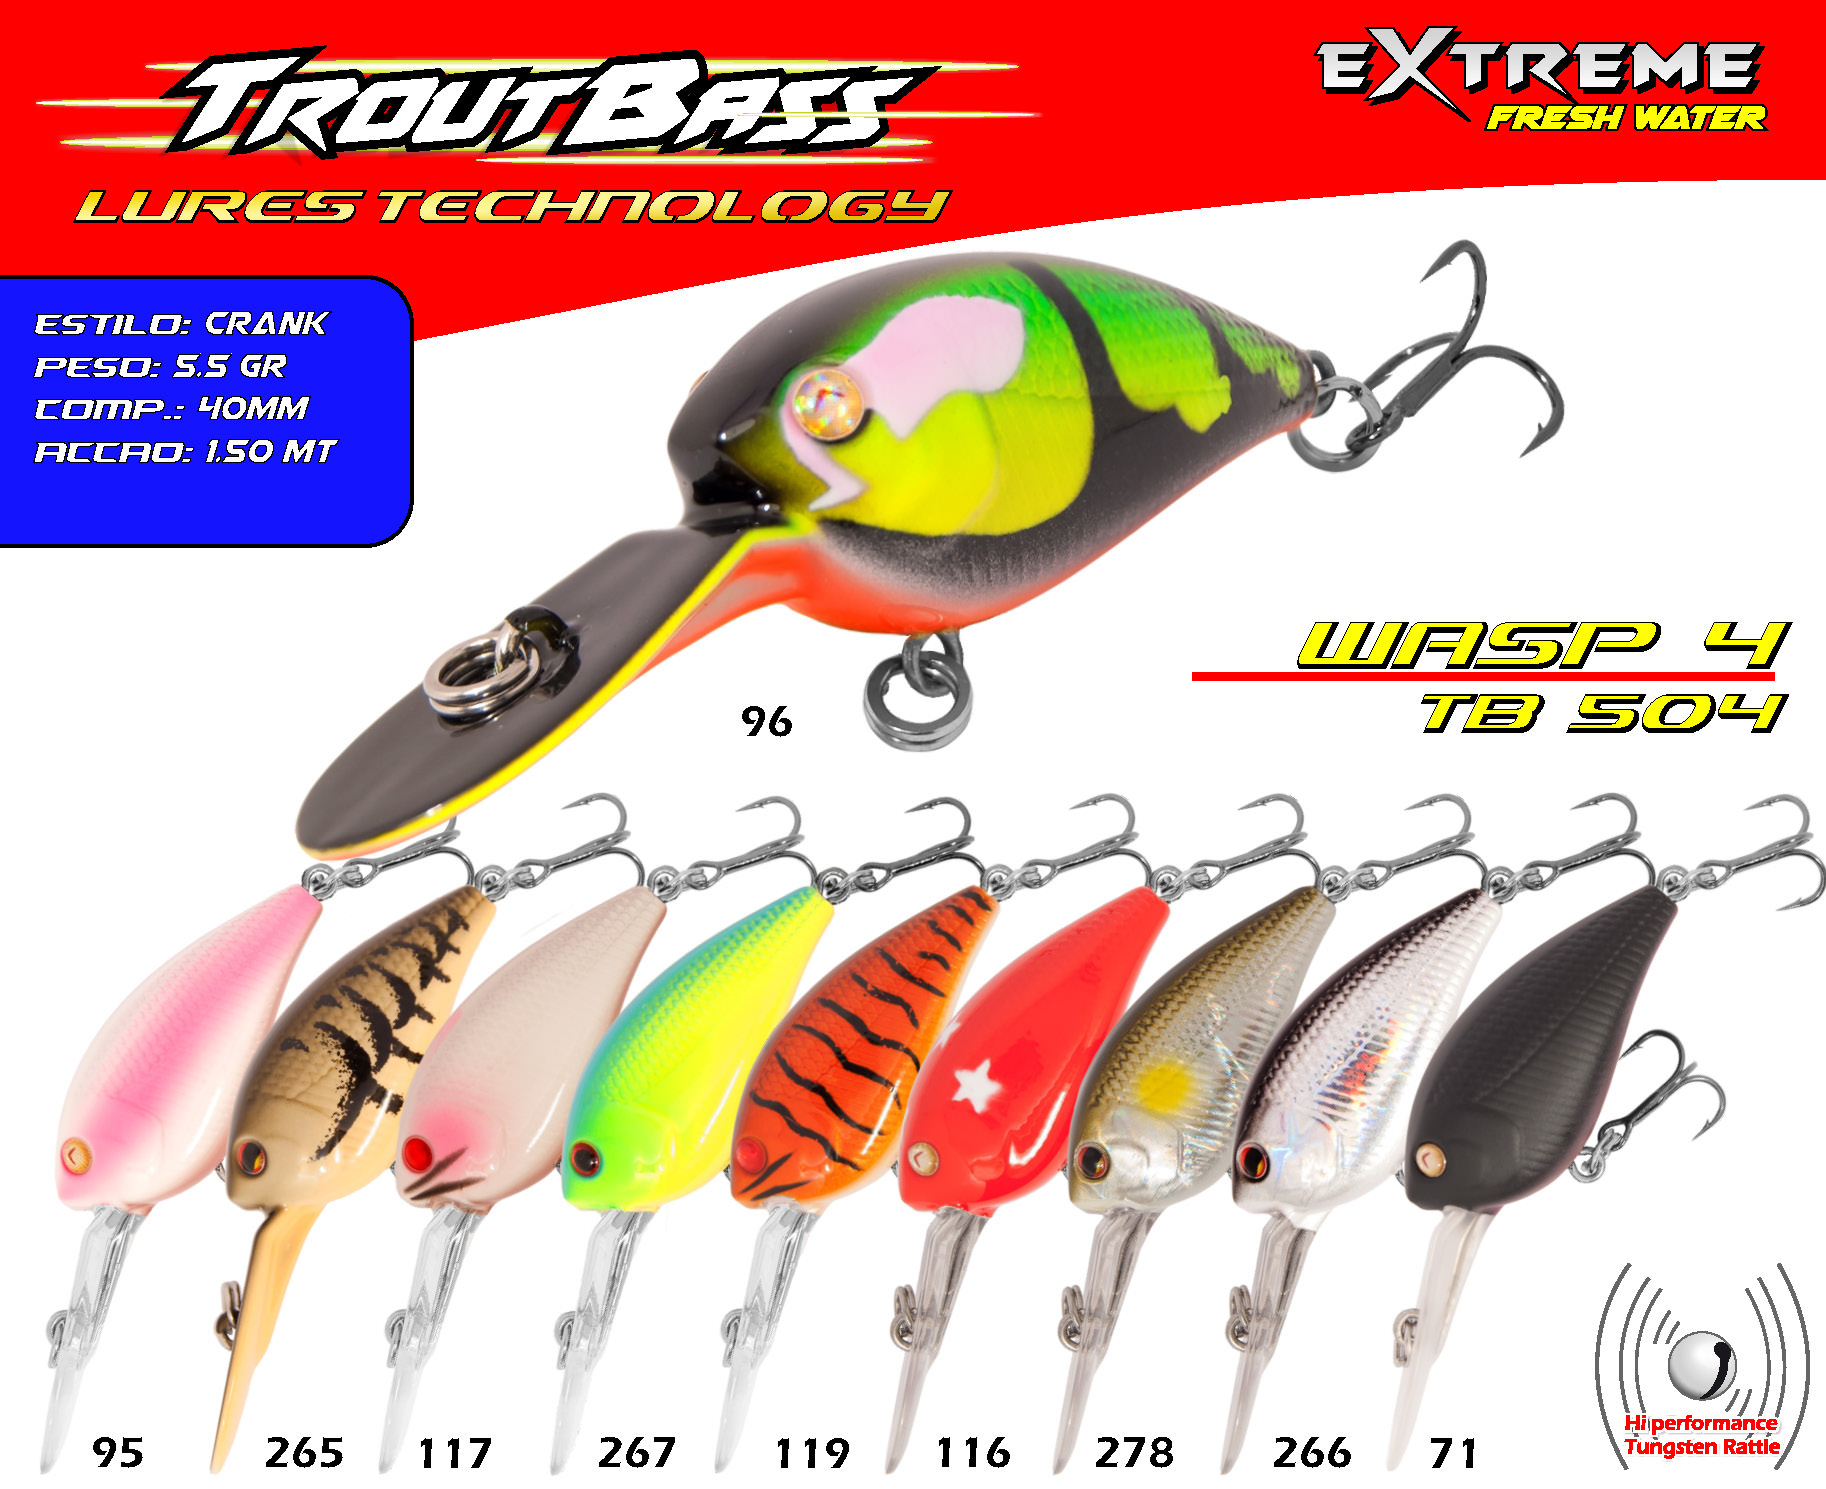 Troutbass Wasp 4 TB 504